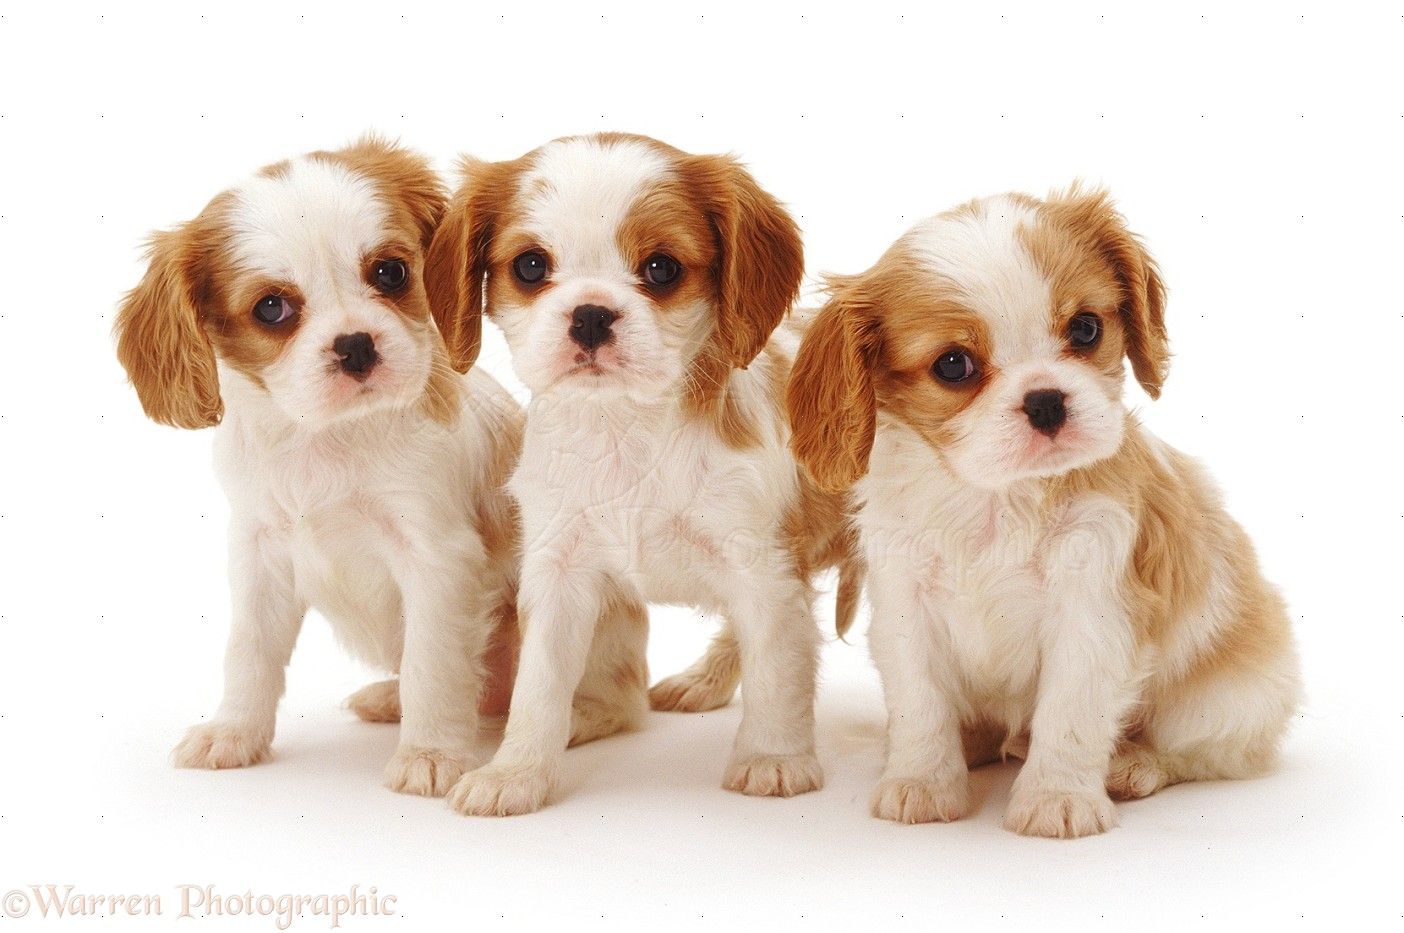 Dogs blenheim cavalier king charles spaniel pups 6 weeks old blenheim cavalier king charles spaniel pups 6 weeks old altavistaventures Images